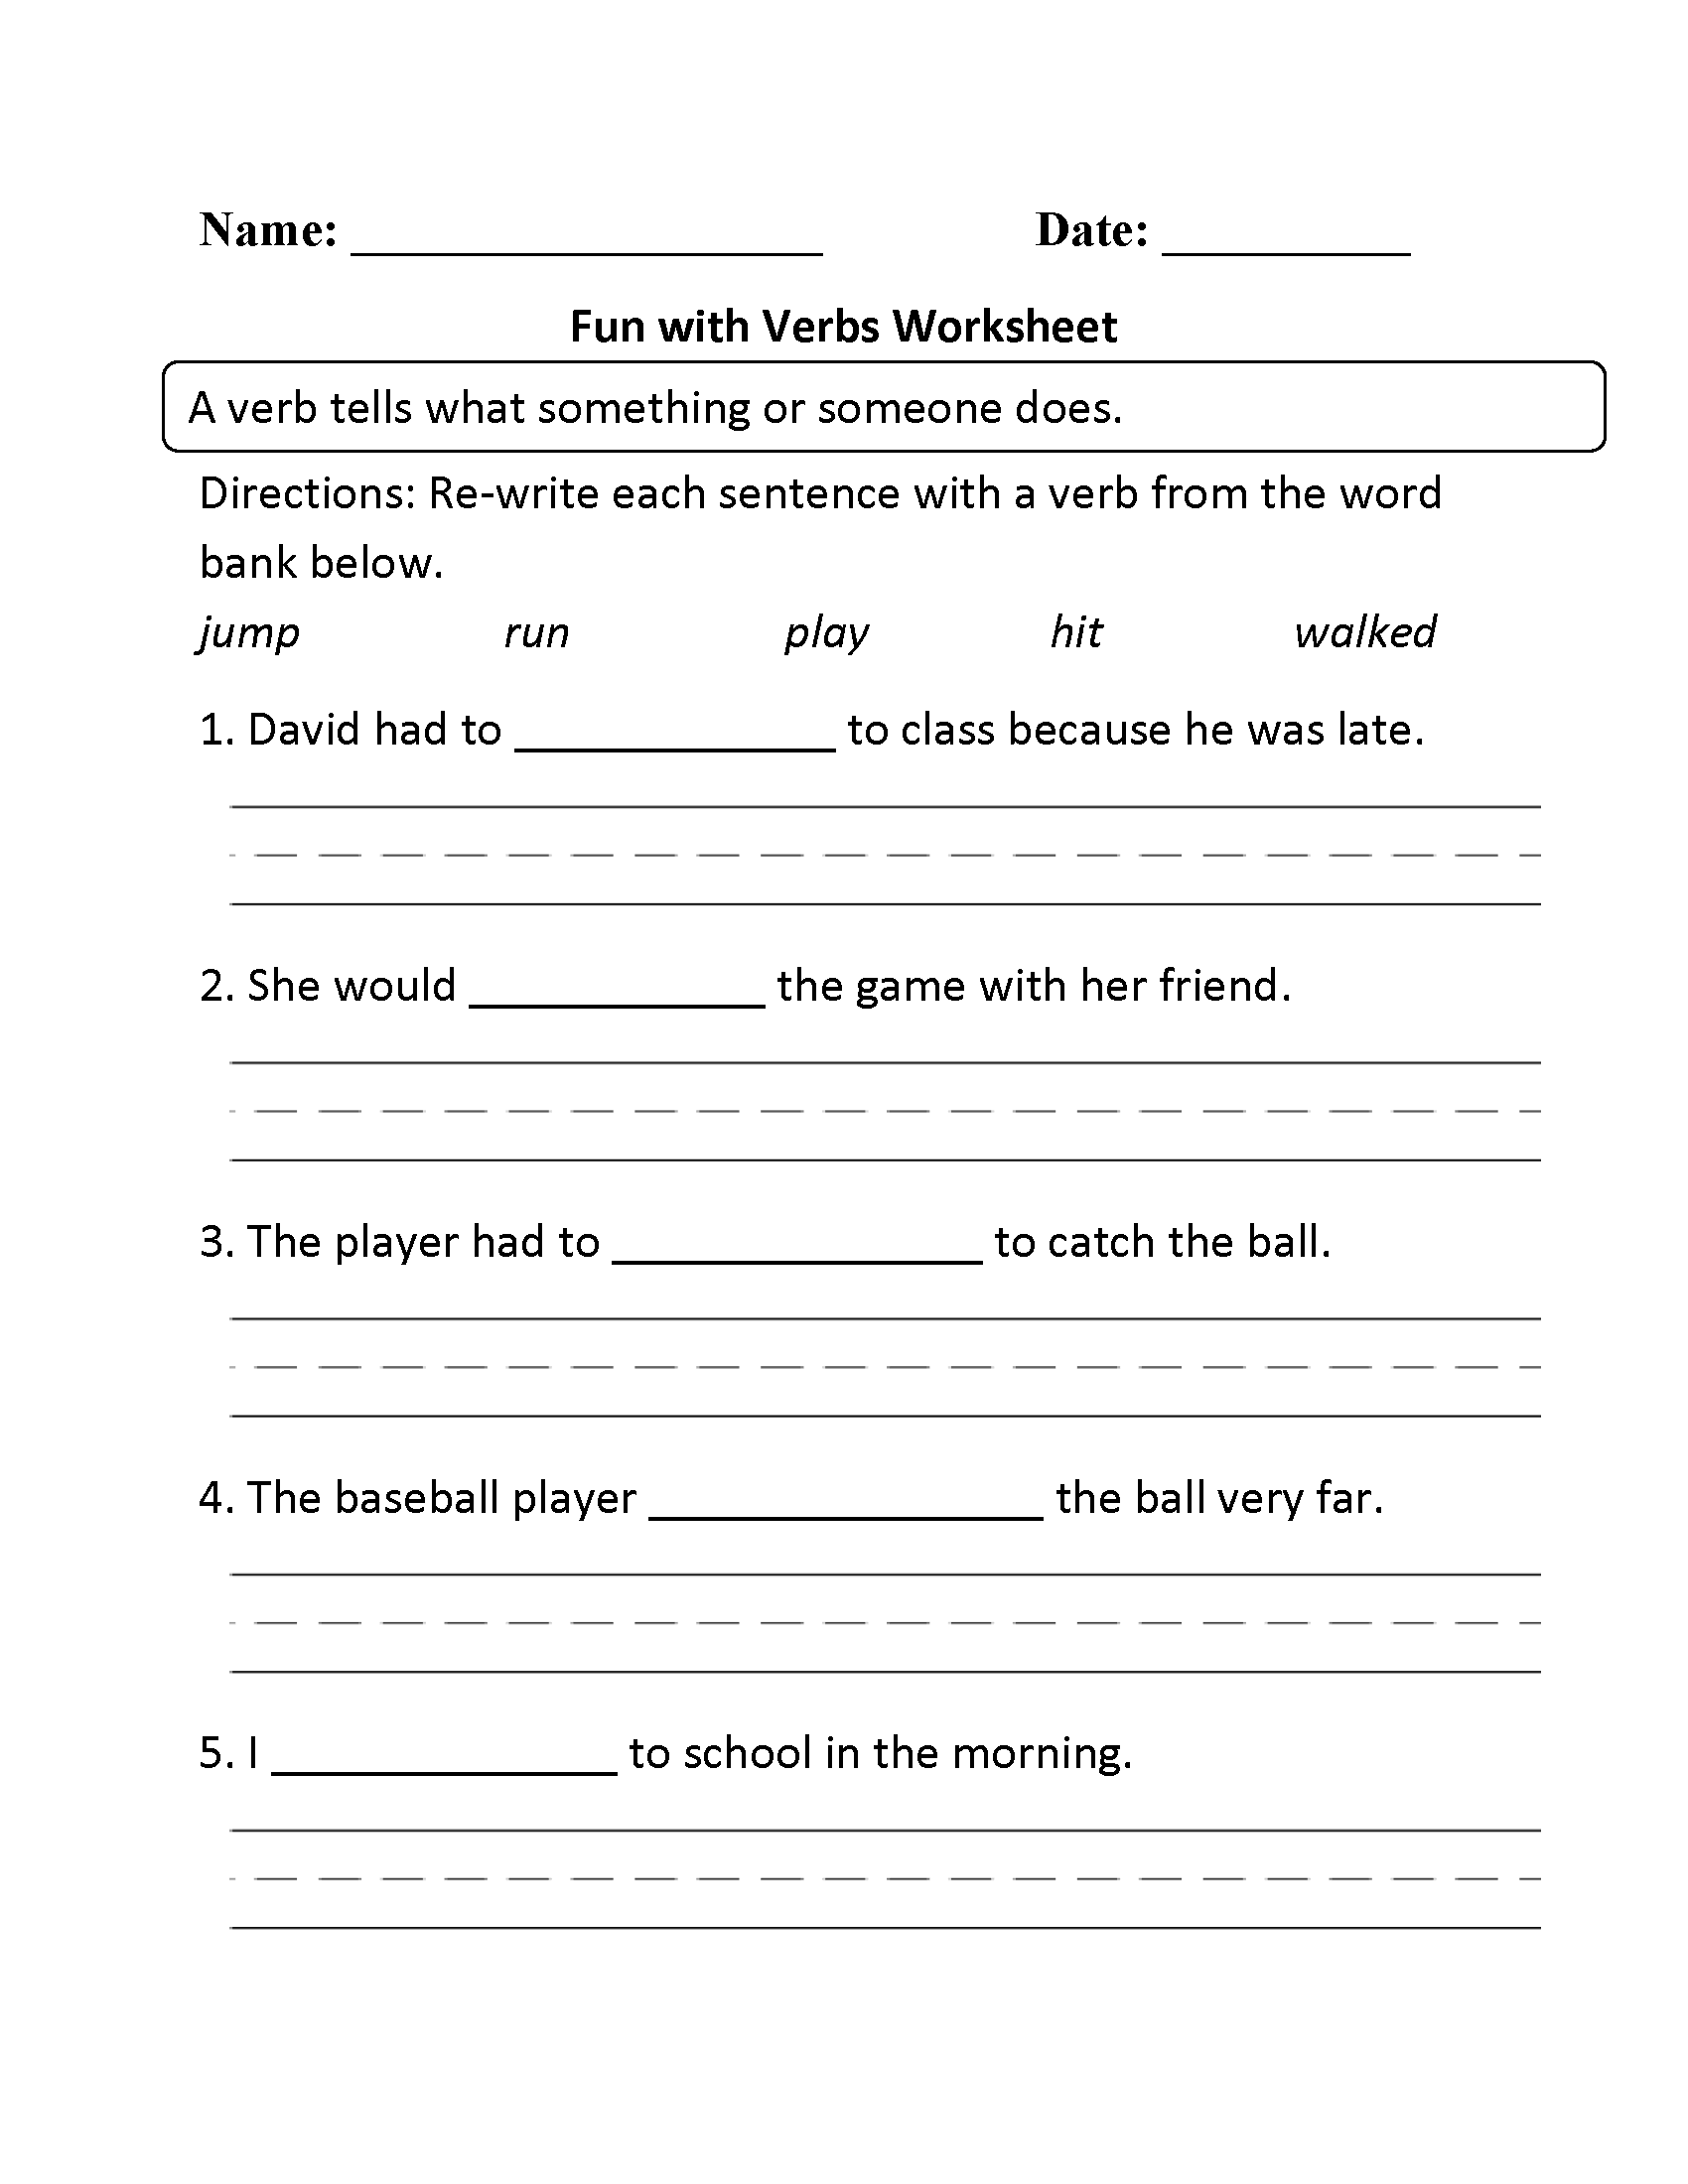 worksheet Parts Of A Sentence Worksheet fun with verbs worksheet teach pinterest worksheets verb a is word that expresses an action or state of being form the main part predicate sentence there ar